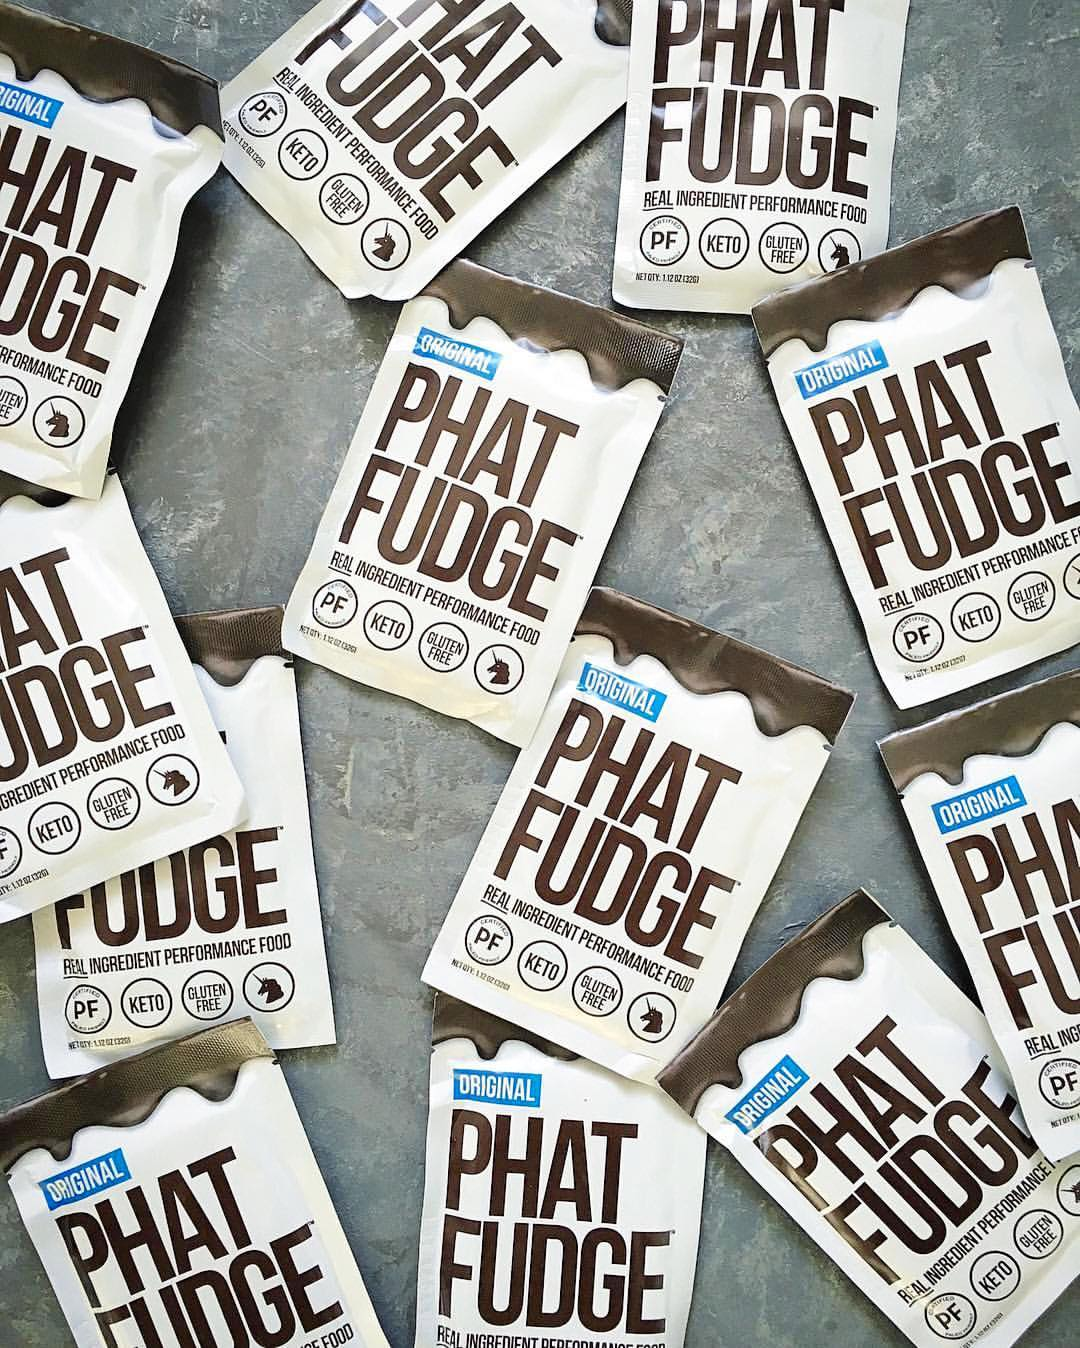 Phat Fudge is a delicious on-the-go snack that is paleo, organic, gluten-free, and has only 2.5 g of sugar per pack. There is a vegan option, too. Available at all Amaranth locations.